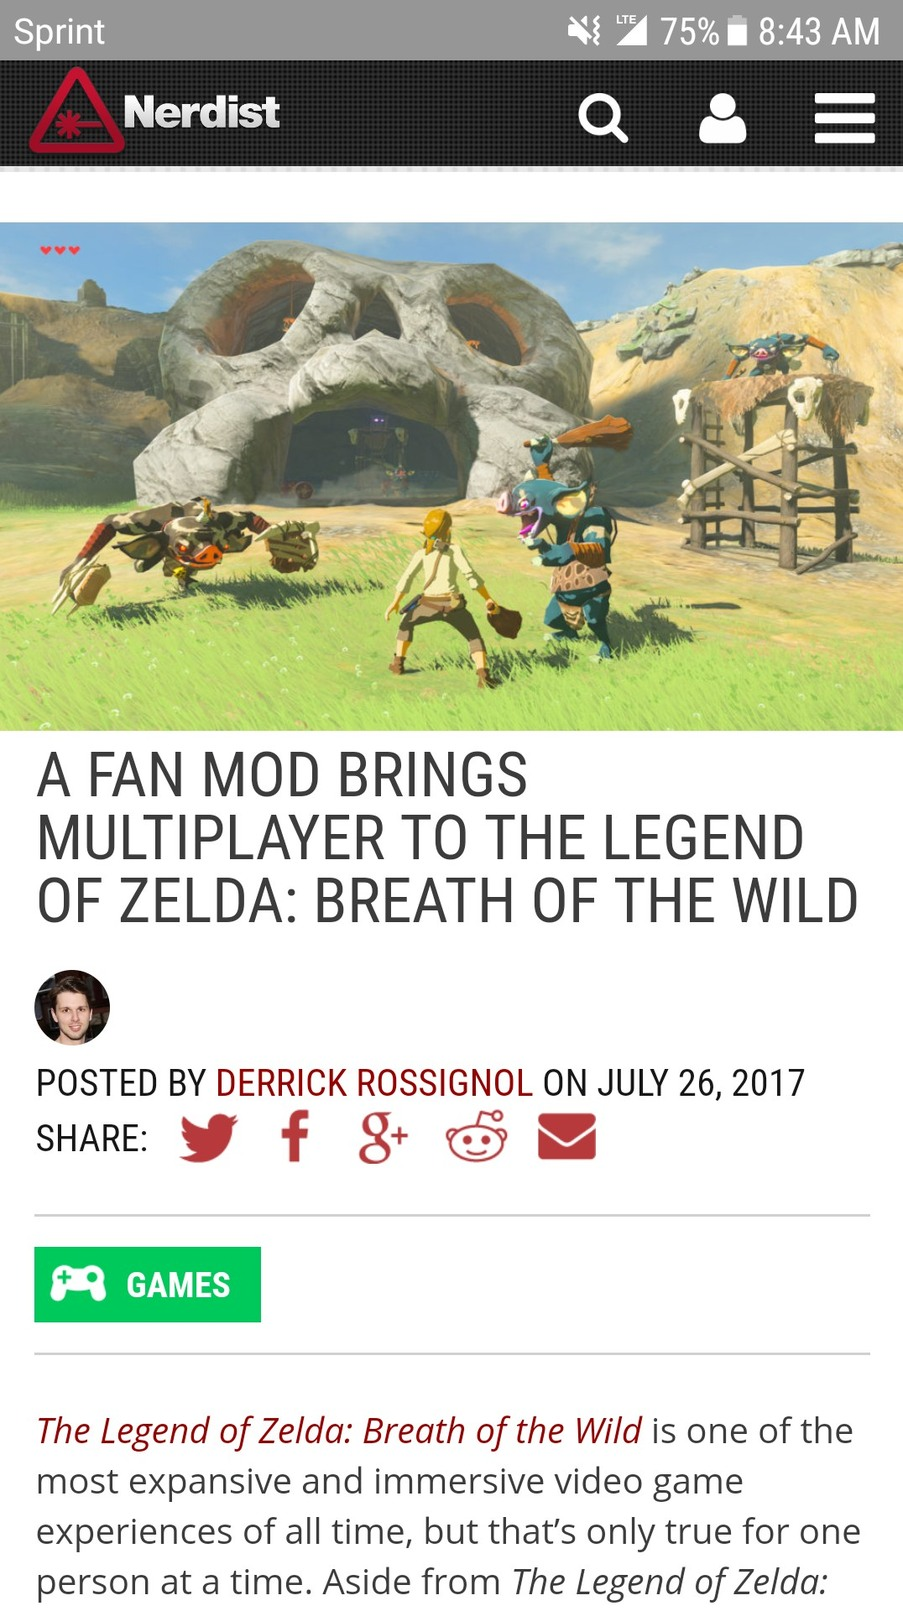 How quick is Nintendo going to take this down? - meme